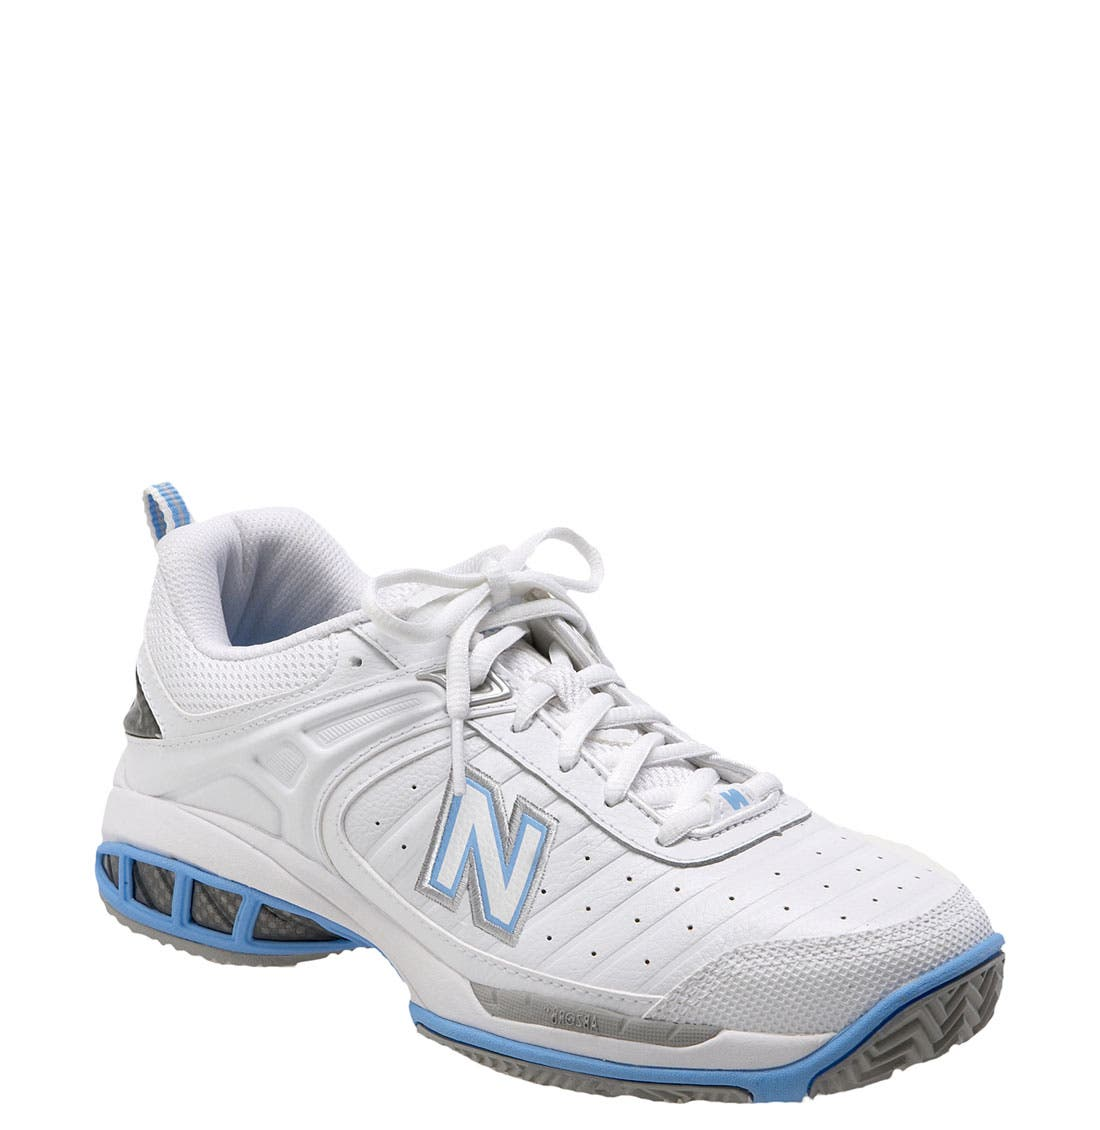 Alternate Image 1 Selected - New Balance '804' Tennis Shoe (Women)